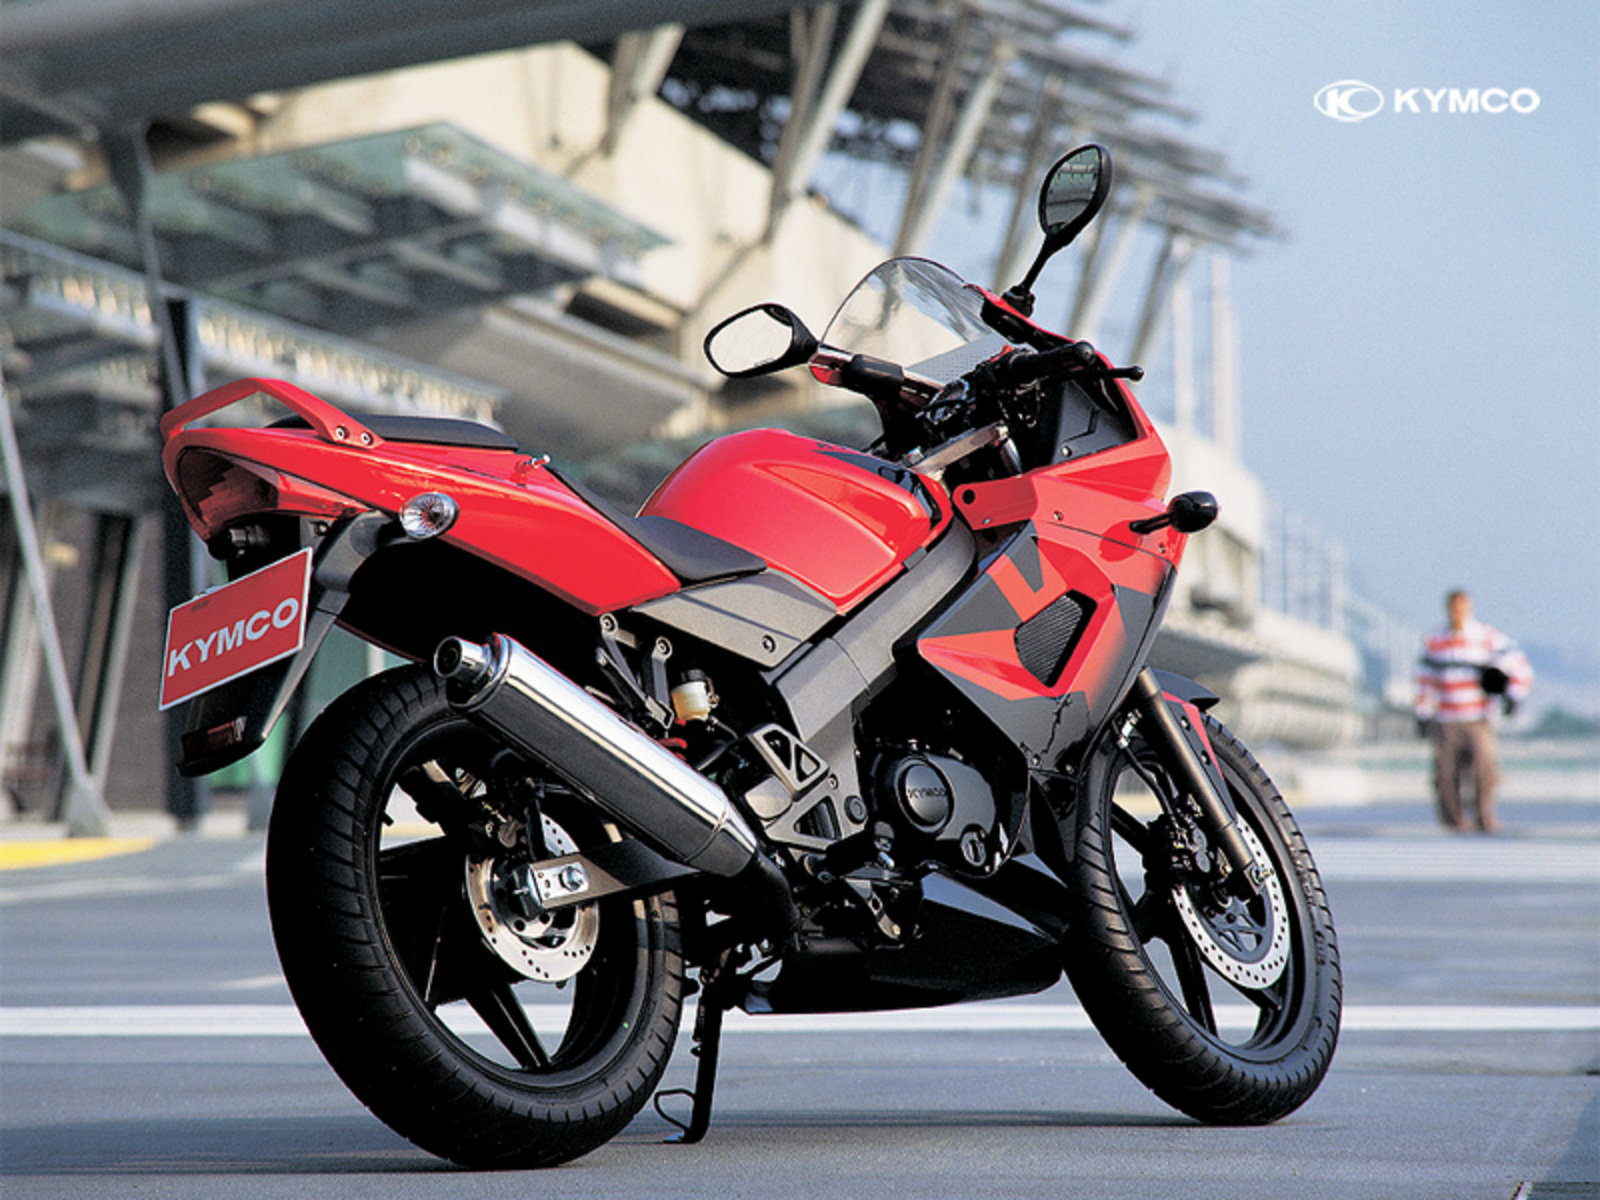 2013 Kymco Quannon 125 Gallery 517869   Top Speed